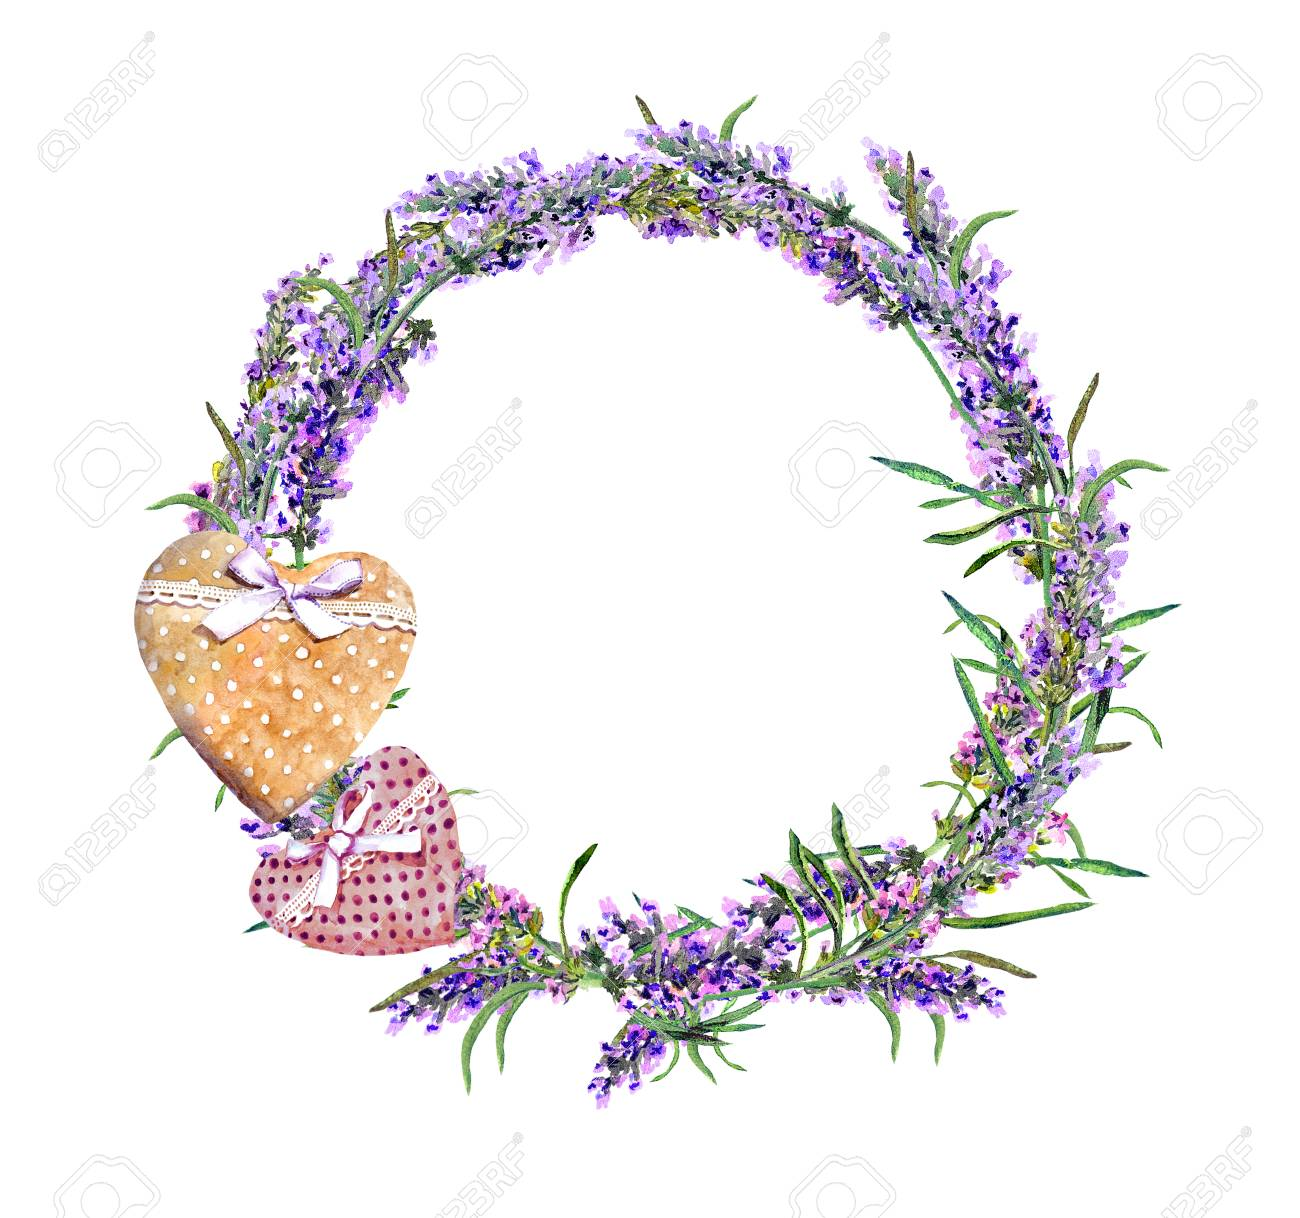 Lavender Flowers Wreath Textile Hearts Watercolor In Rustic Provencal Style Stock Photo